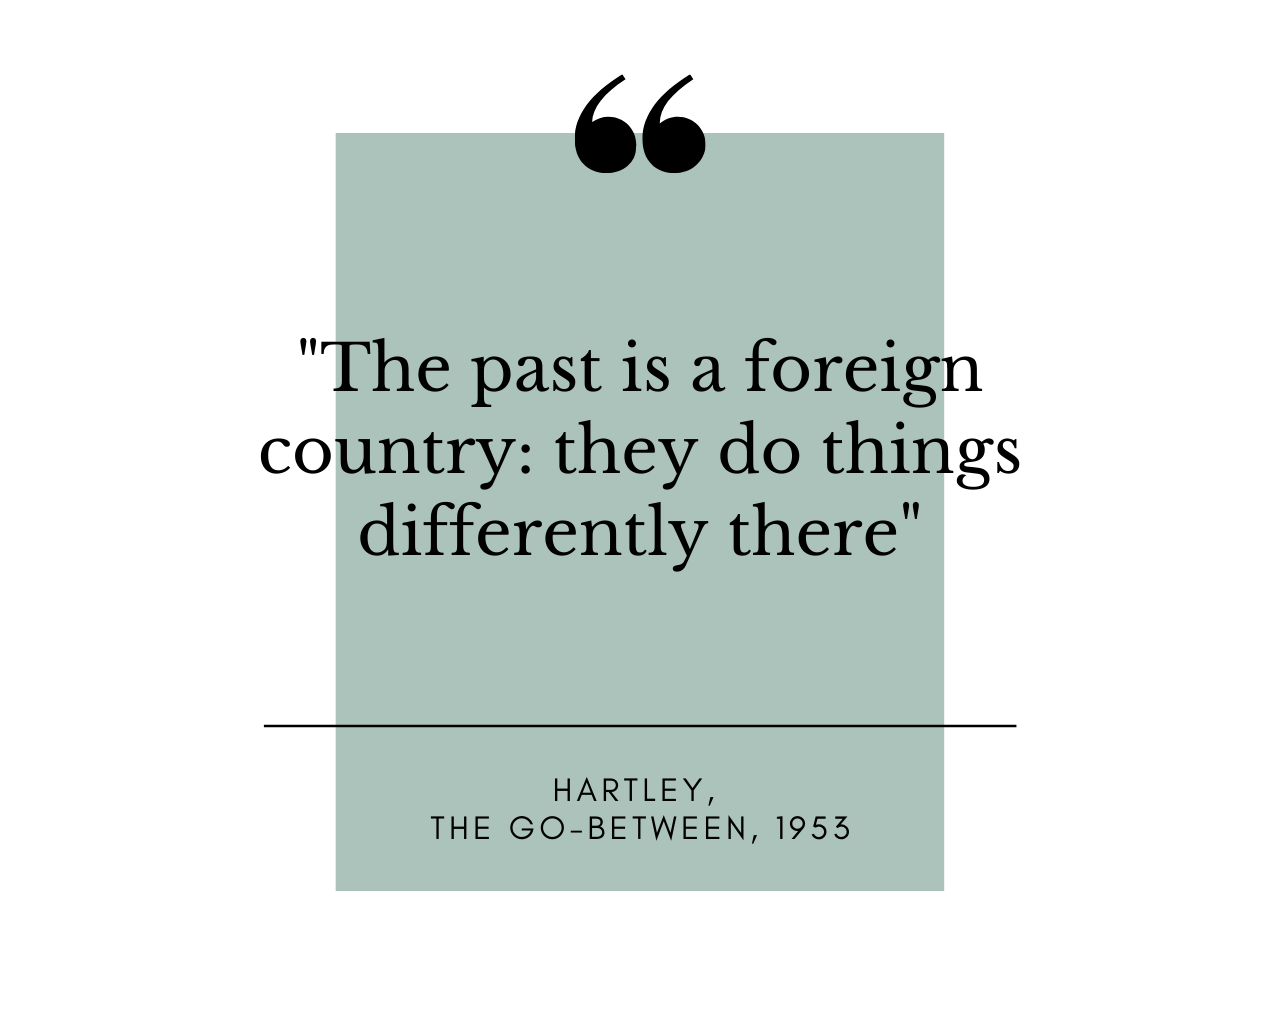 The past is a foreign country: they do things differently there